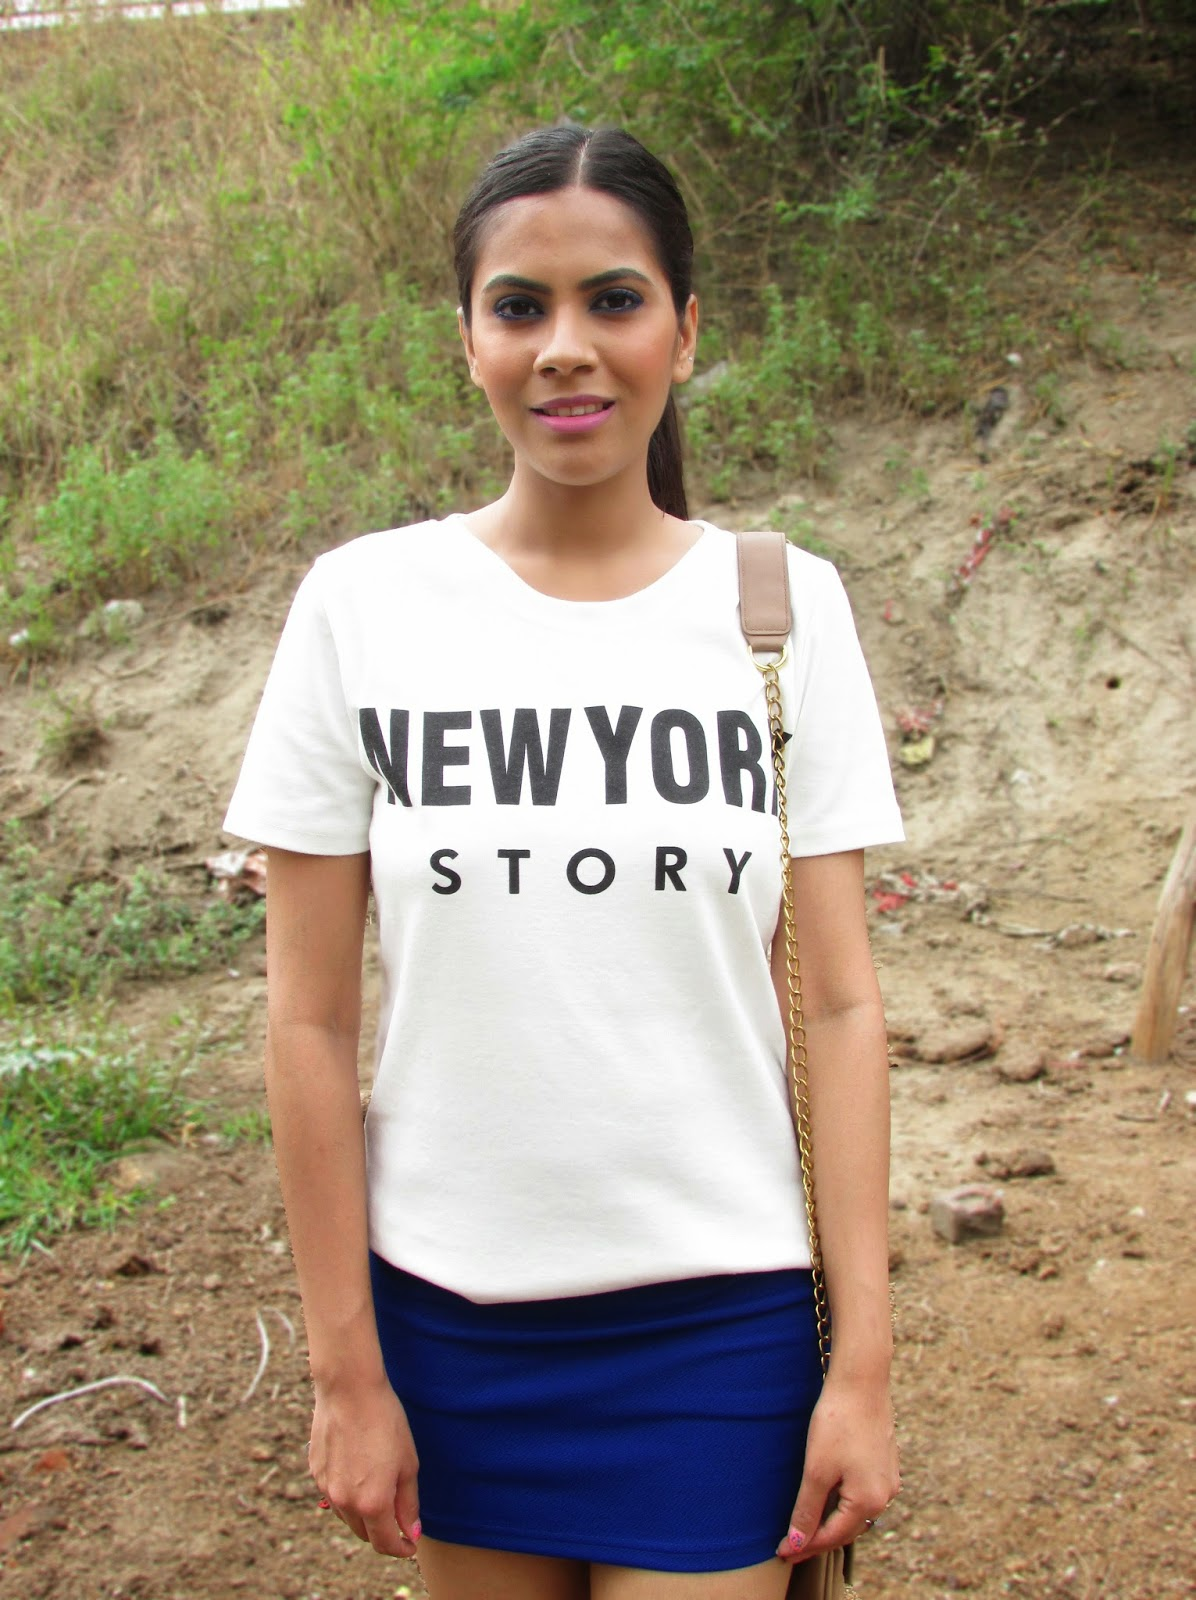 NY , New york tee, new York top , New york print top , New york print tshirt , NY slogan tee shirt , slagan tshirt, NY tee, new york stork tee, new york tee romwe,Sunglasses are a must have in summers and I got vintage round sunglasses. Round sunglasses look perfect on any face shape